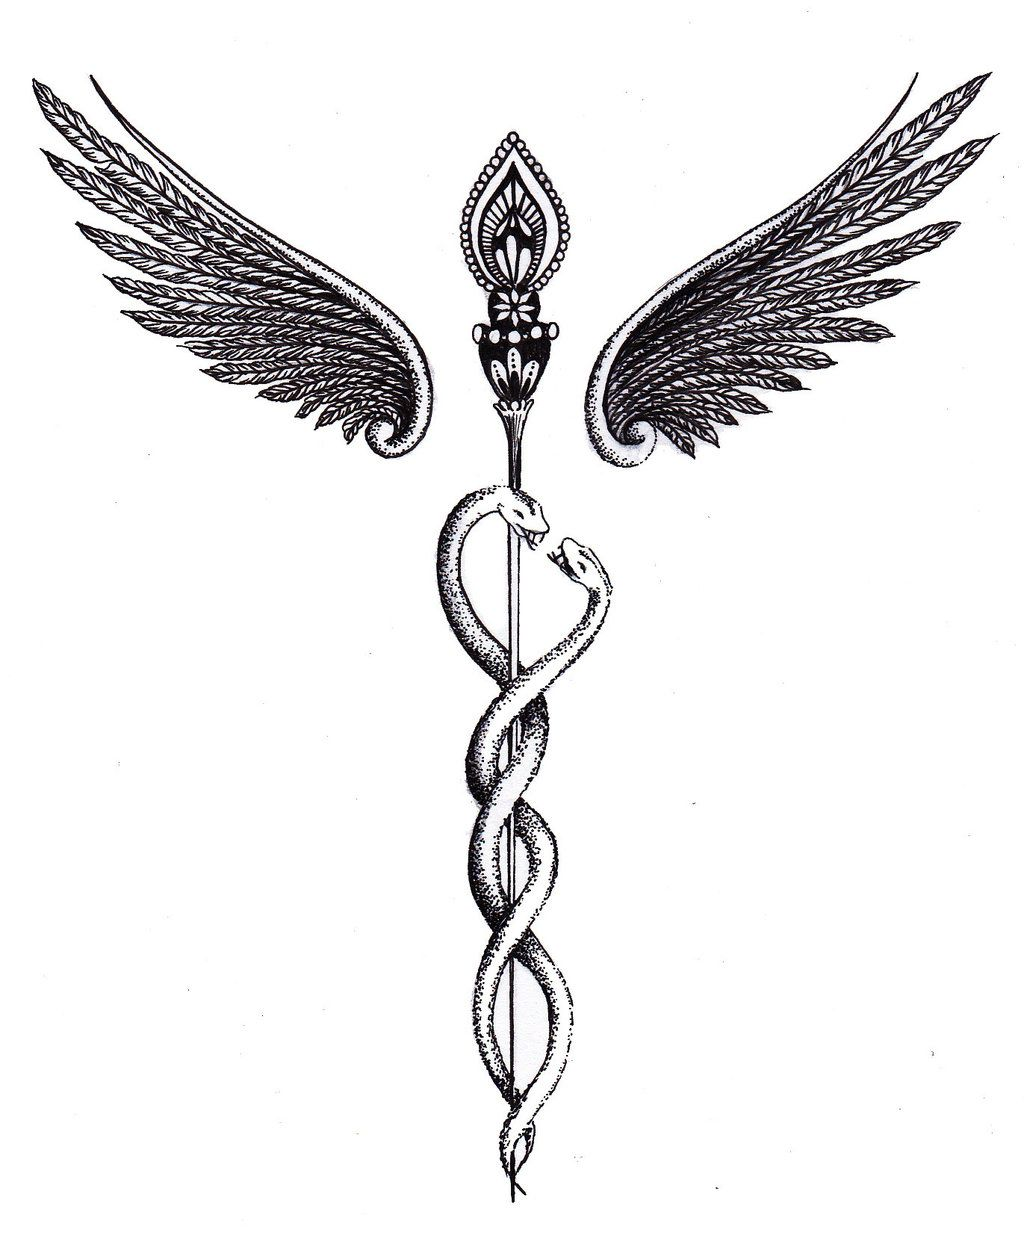 Caduceus Tattoo